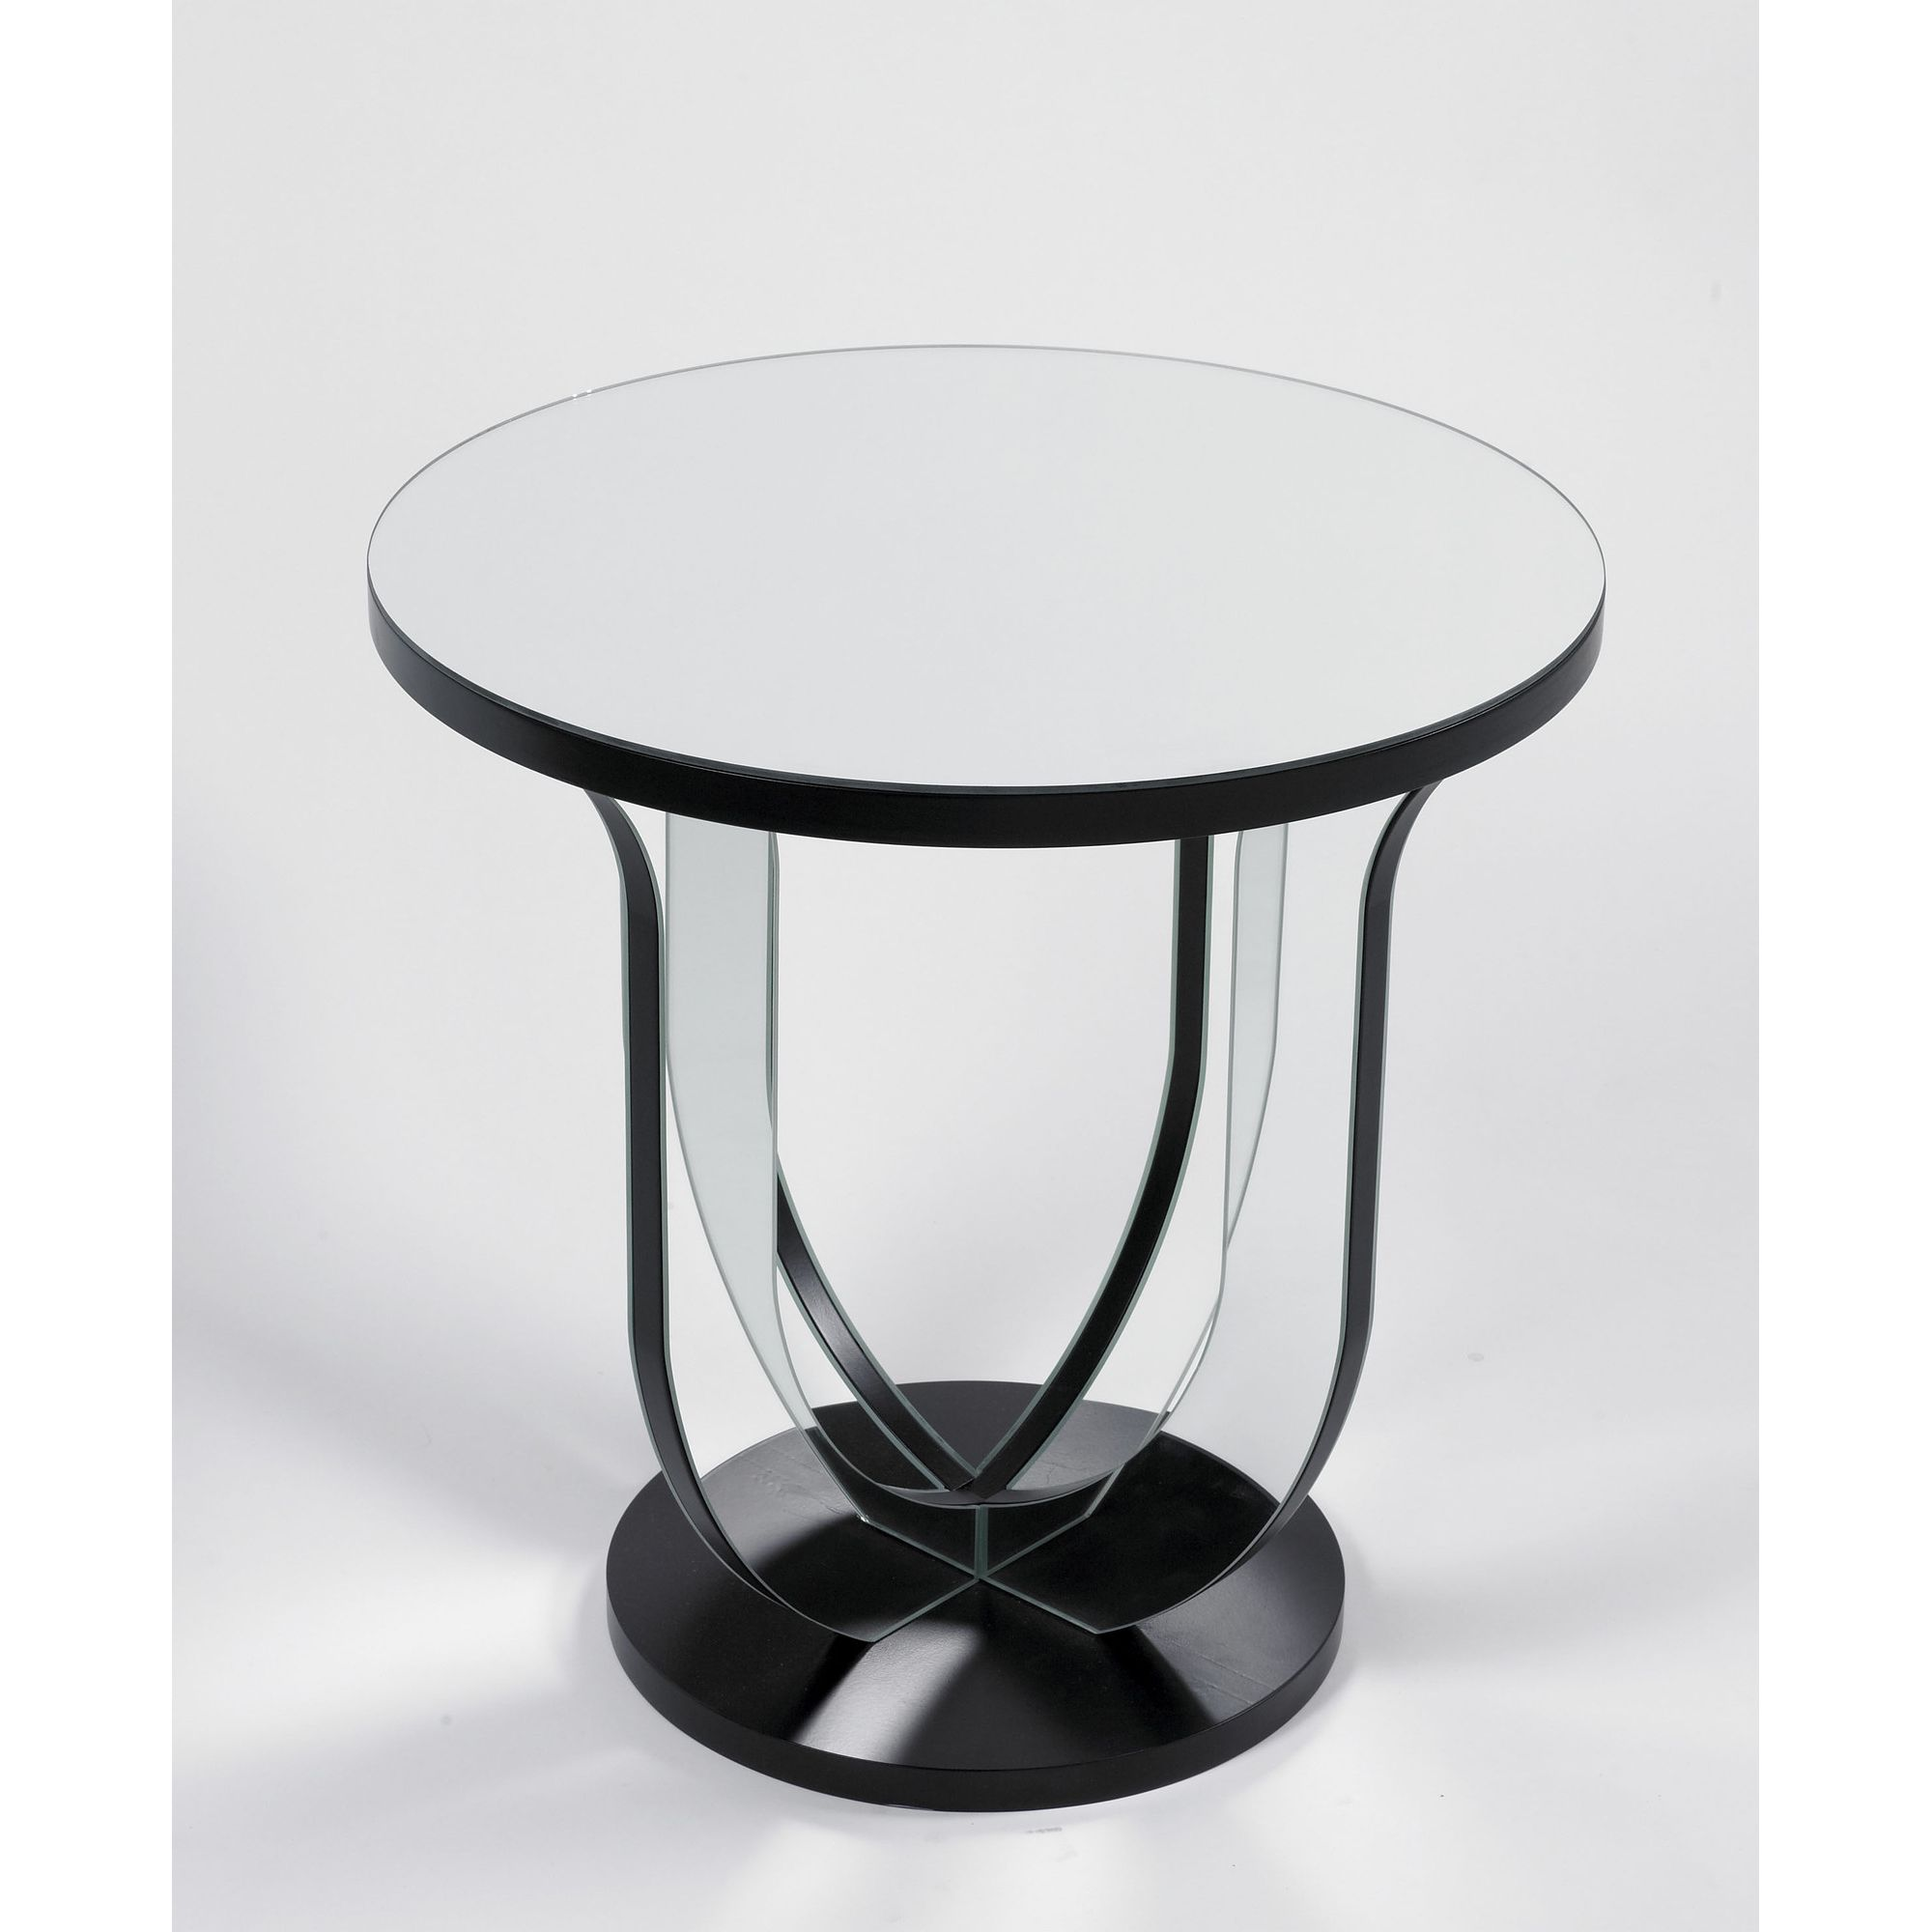 Morris Mirrors Ltd Lamp Table in Black and Silver at Tescos Direct